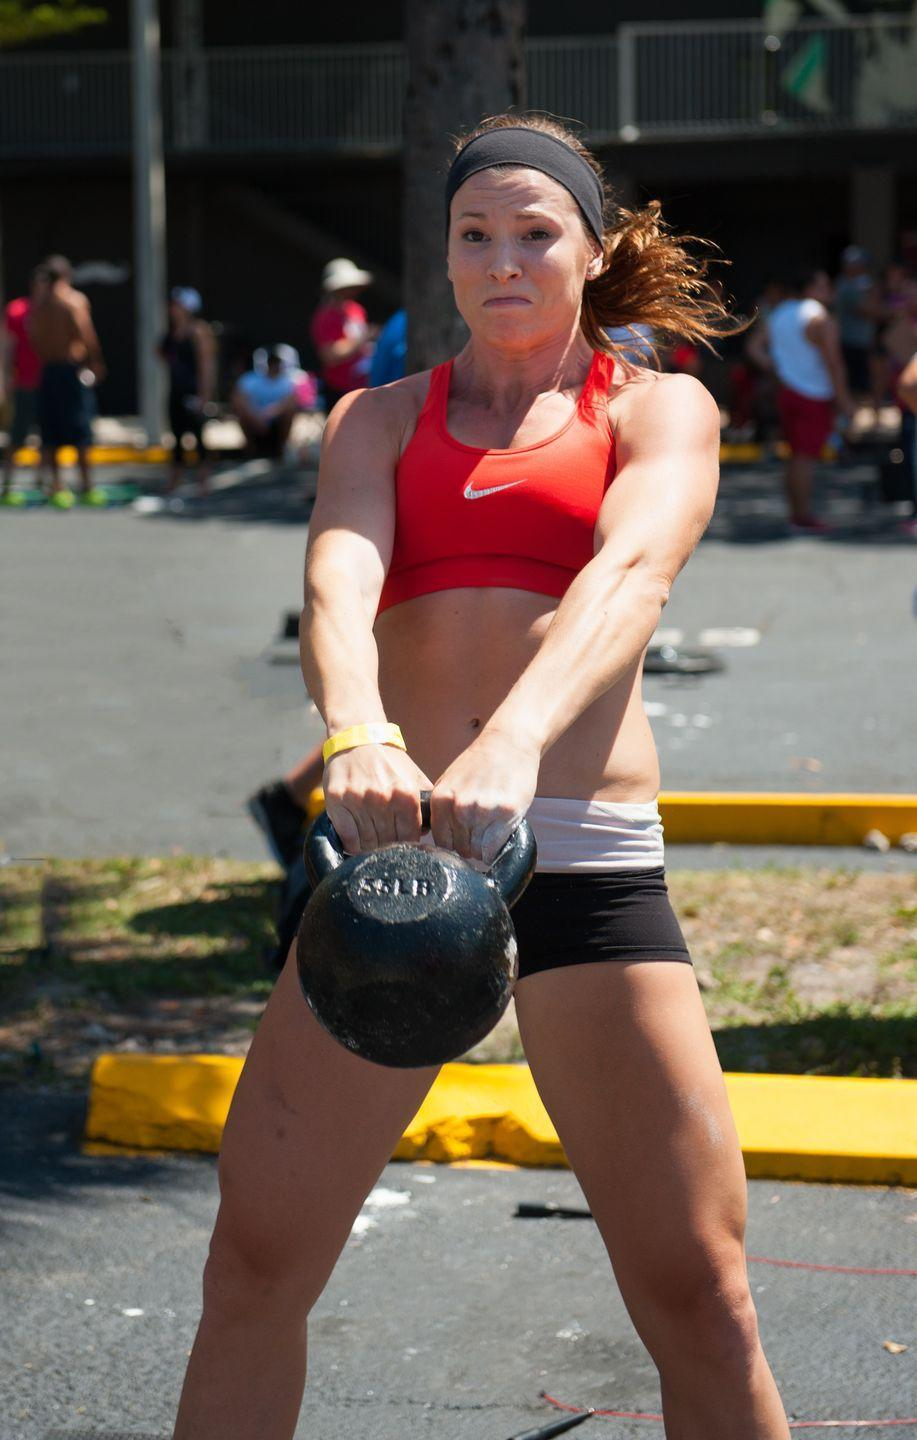 """<p>That means, you'll have to invest in <a href=""""https://s3.amazonaws.com/crossfitpubliccontent/CrossFitGames_Rulebook.pdf"""" rel=""""nofollow noopener"""" target=""""_blank"""" data-ylk=""""slk:standard CrossFit equipment"""" class=""""link rapid-noclick-resp"""">standard CrossFit equipment</a> if you don't already own it, such as Olympic-style barbells and plates, pull-up bars, jump ropes, dumbbells, and a plyo box.</p>"""